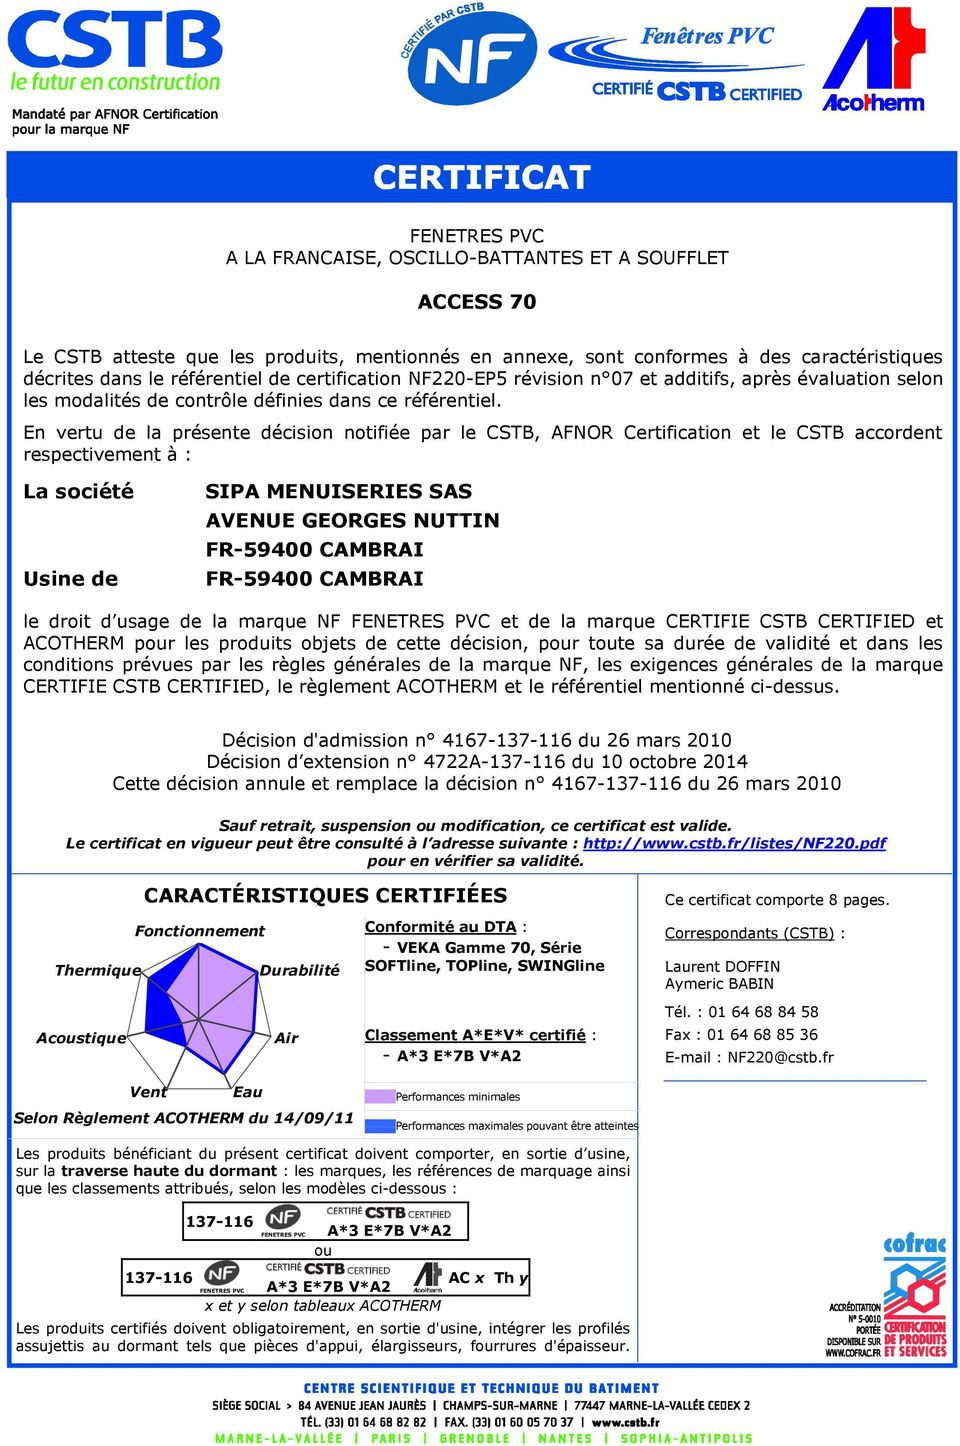 En vertu de la présente décision notifiée par le CSTB, AFNOR Certification et le CSTB accordent respectivement à : La société Usine de SIPA MENUISERIES SAS AVENUE GEORGES NUTTIN FR-59400 CAMBRAI